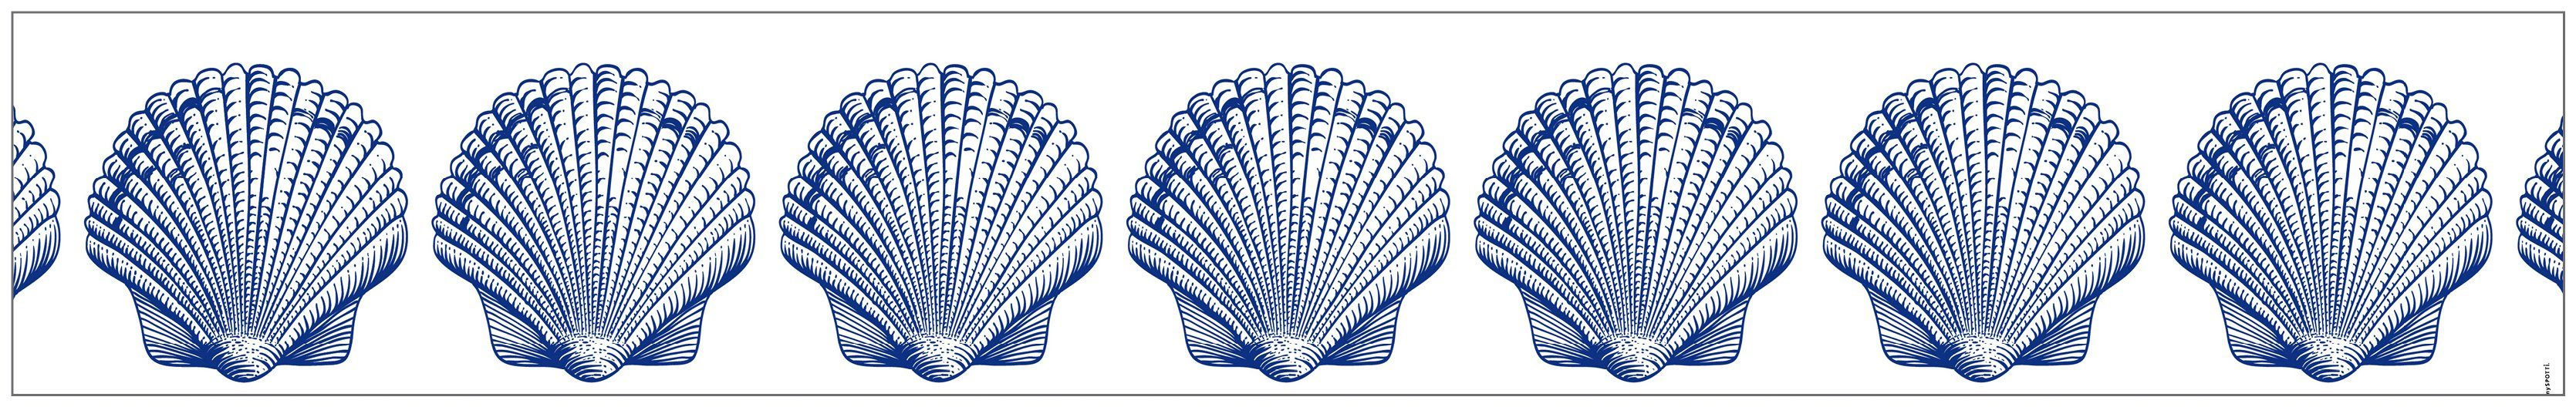 MYSPOTTI Fensterfolie »mySPOTTI look Shells blue«, 200 x 30 cm, statisch haftend